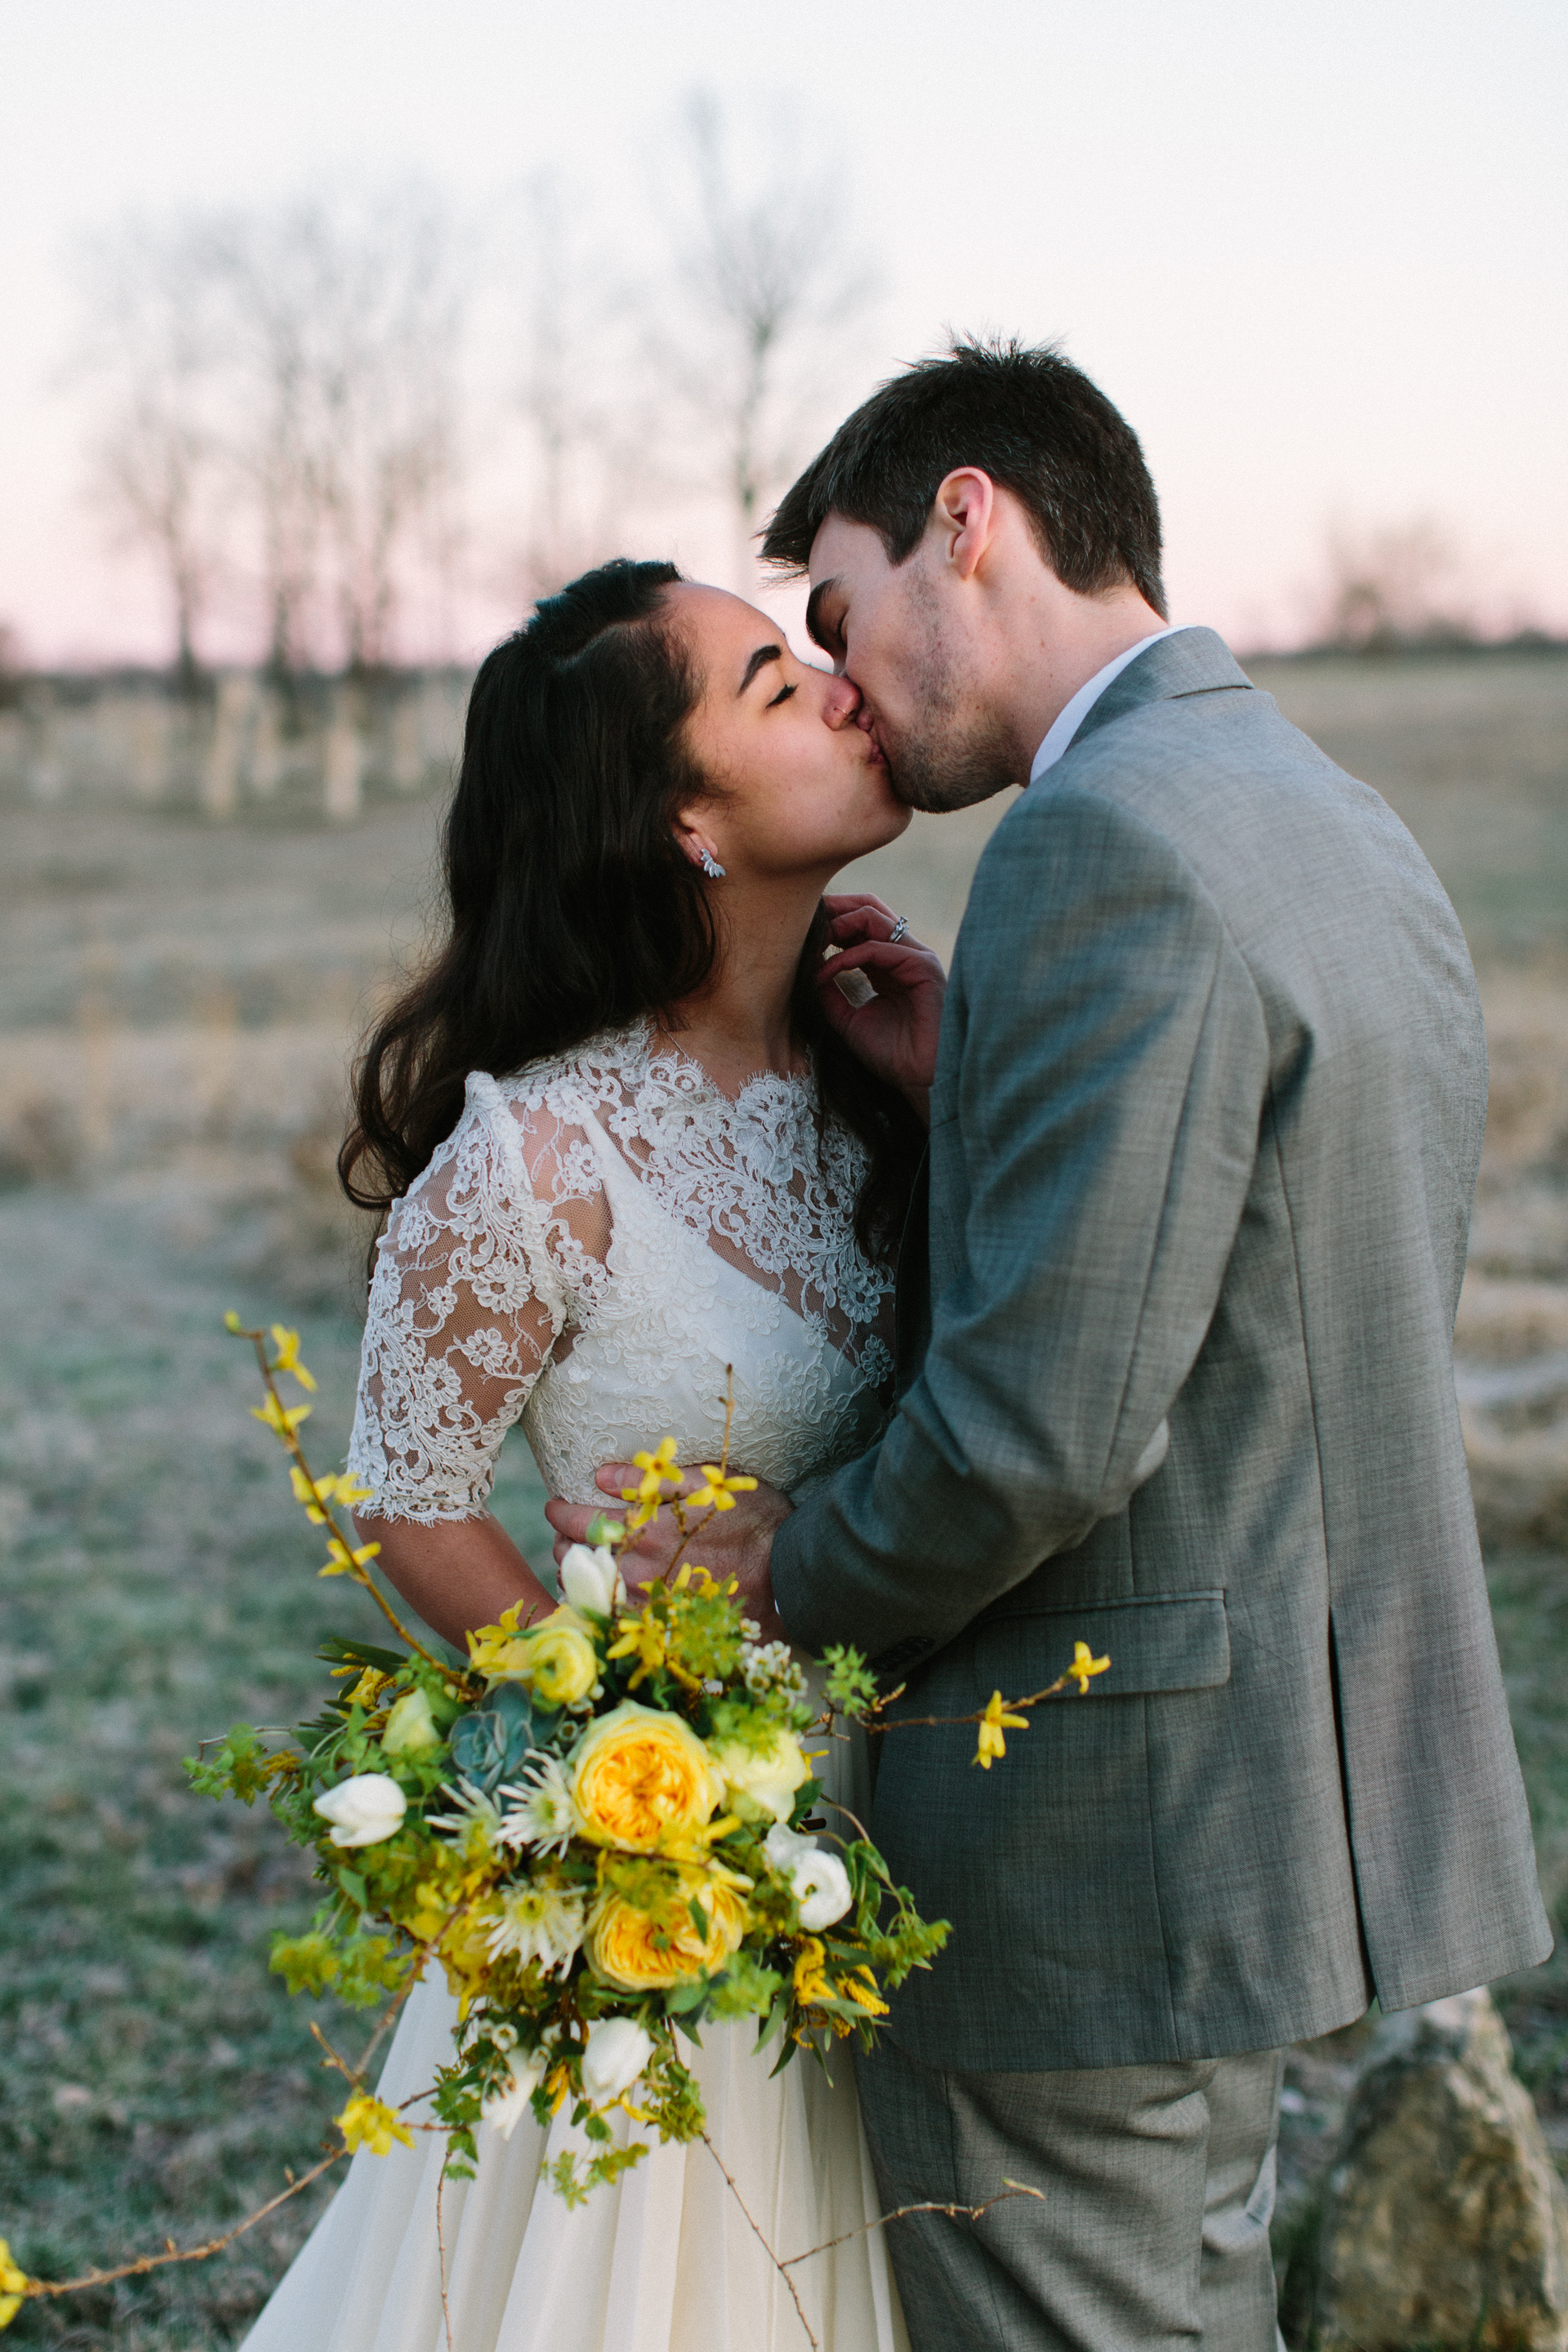 trent.and.kendra.photography.foxhollow.farm.elopement-4.jpg